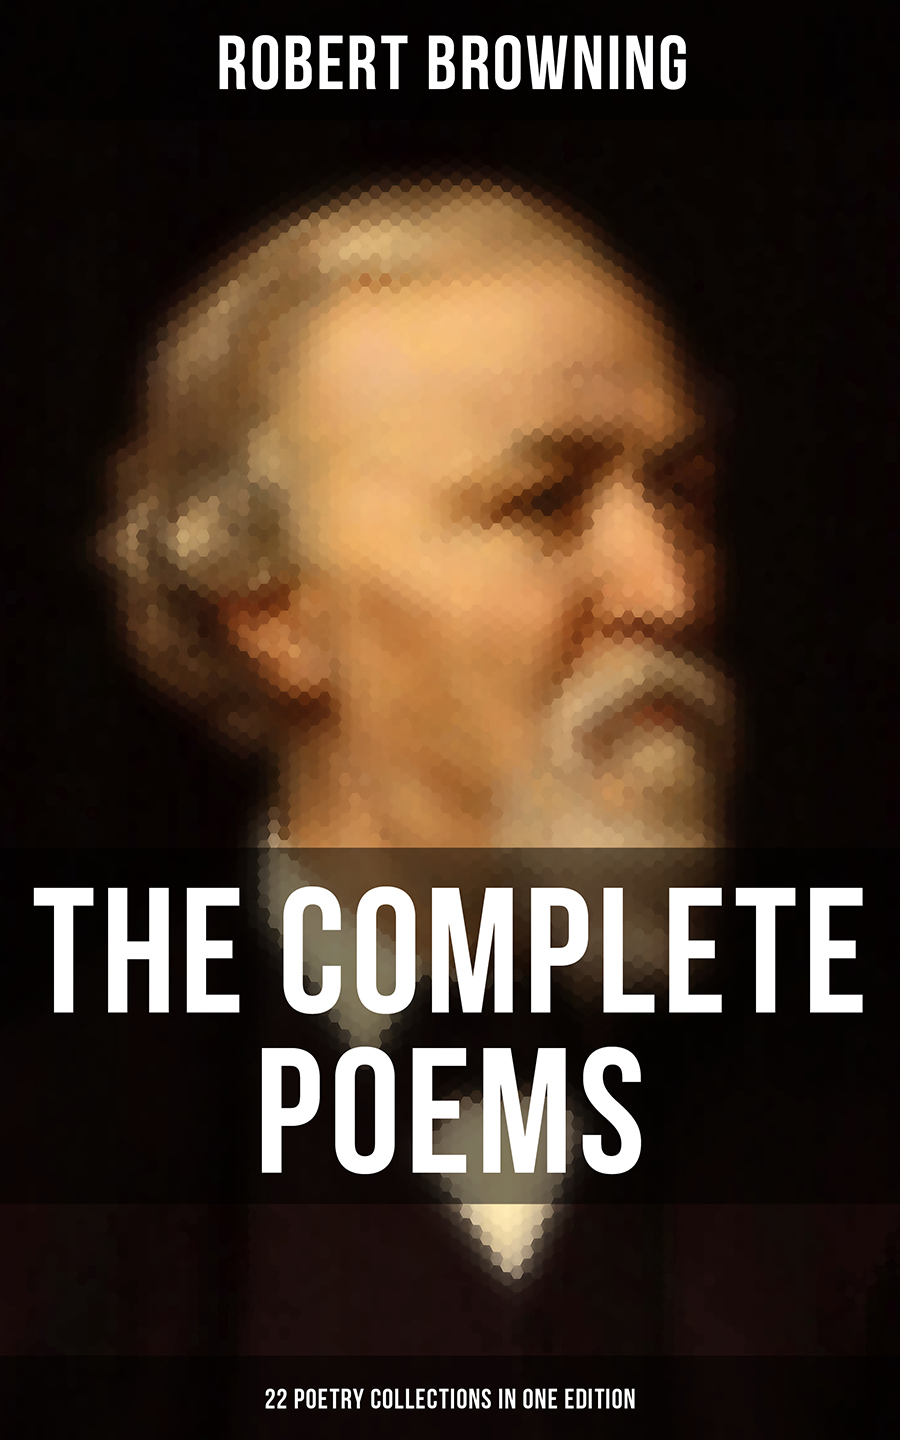 Robert Browning The Complete Poems of Robert Browning - 22 Poetry Collections in One Edition цена и фото